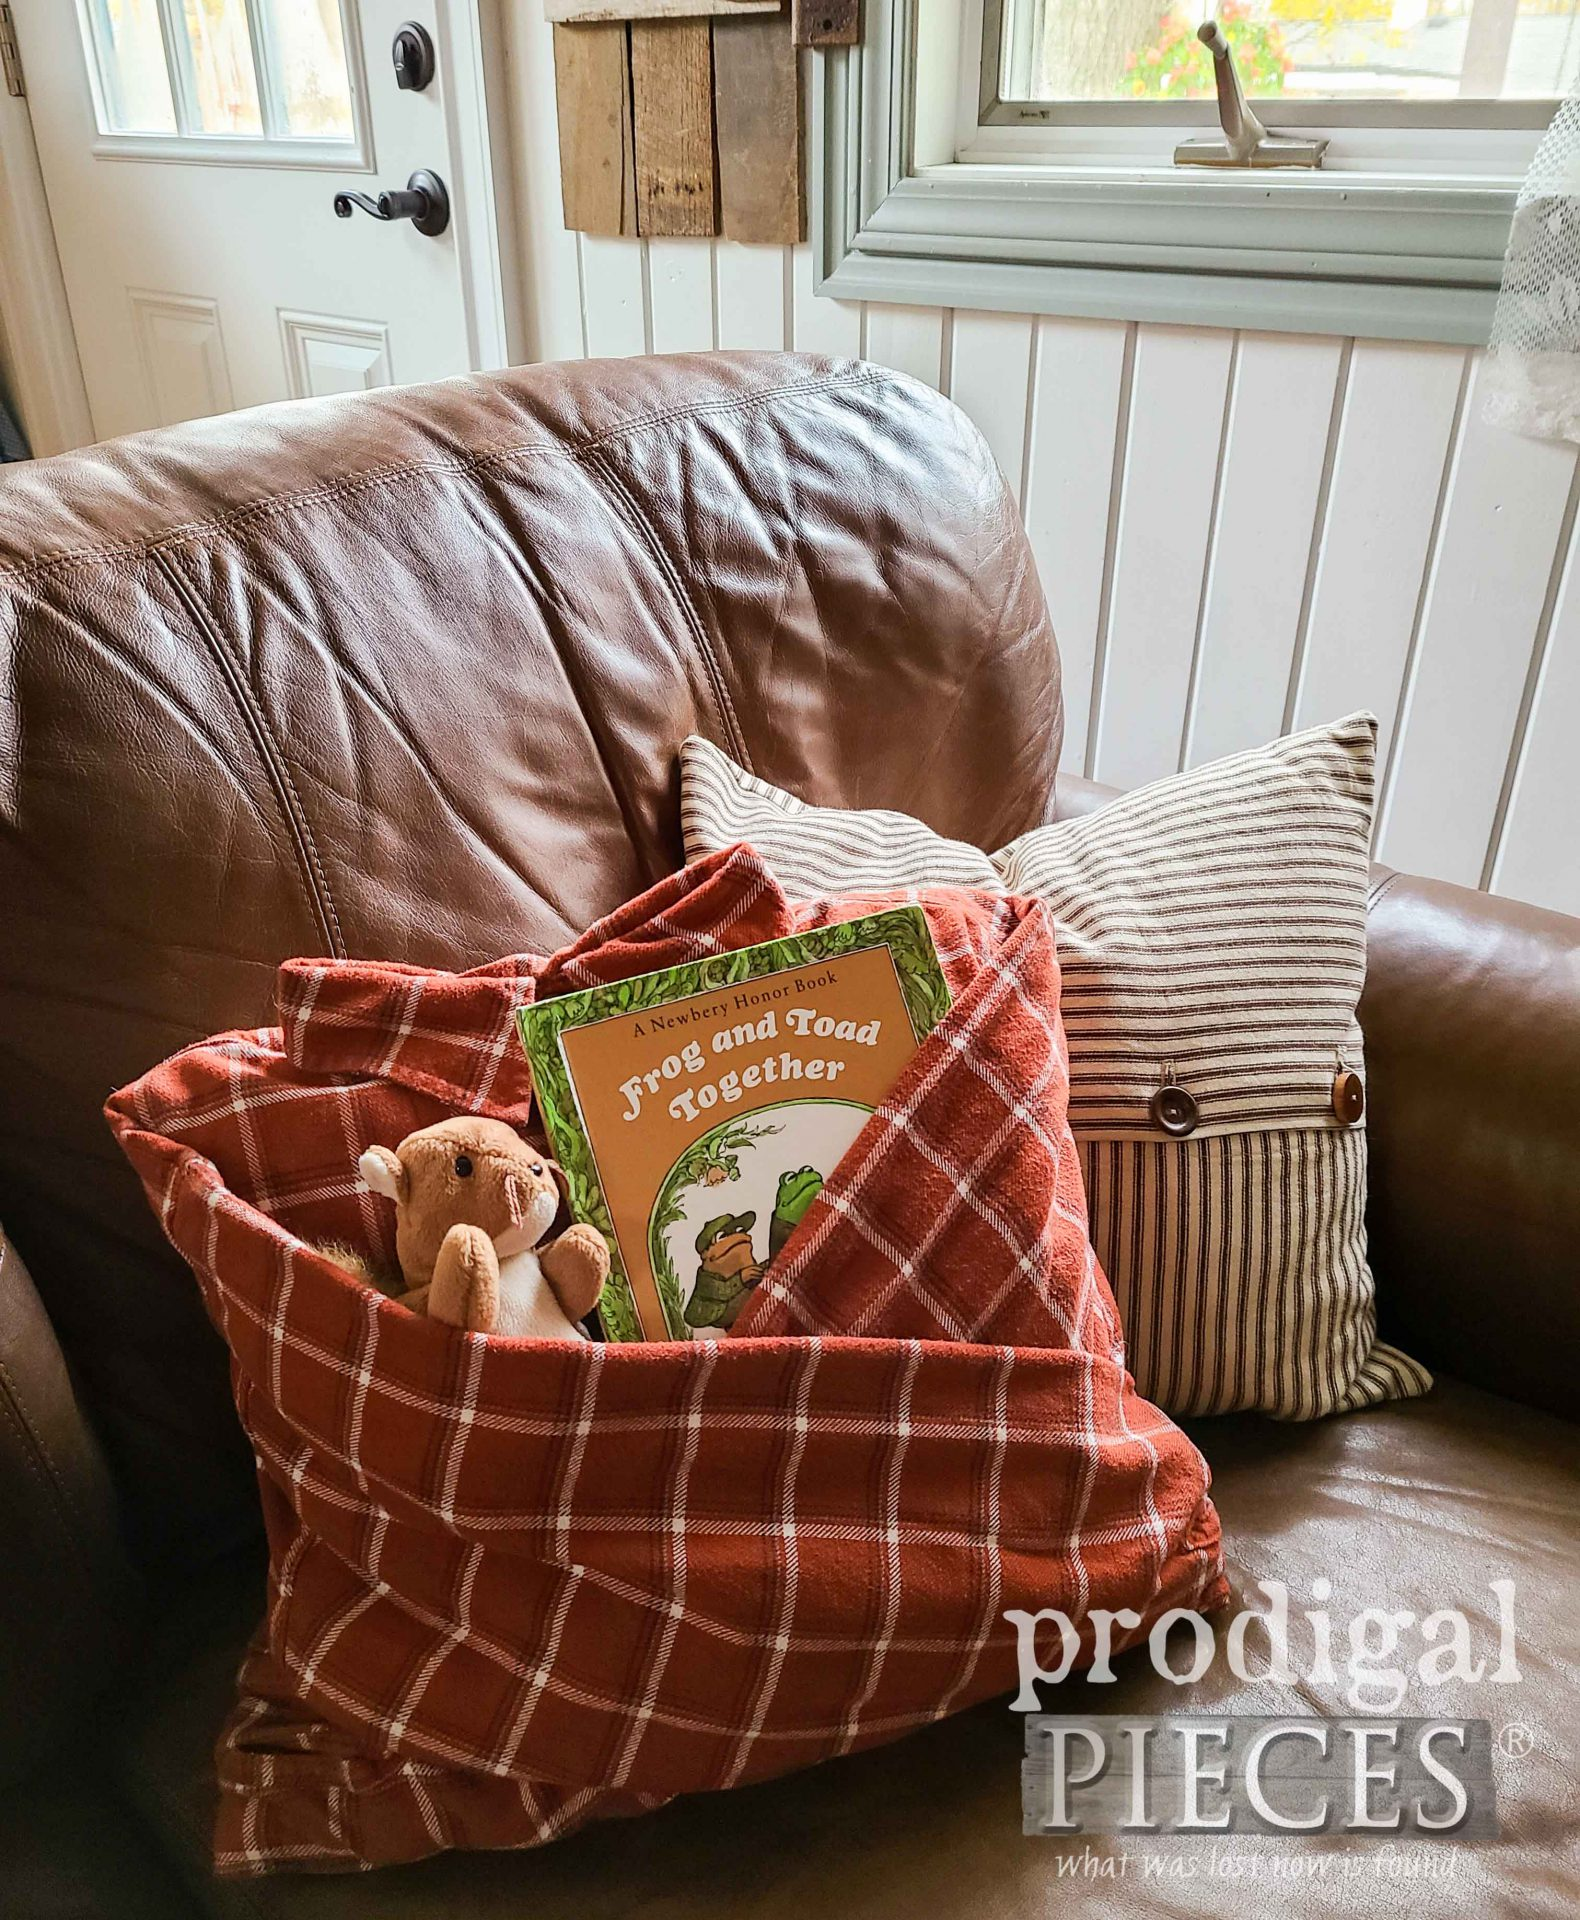 DIY Flannel Shirt Pocket Pillow by Larissa of Prodigal Pieces   Tutorial at prodigalpieces.com #prodigalpieces #diy #giftidea #refashion #sewing